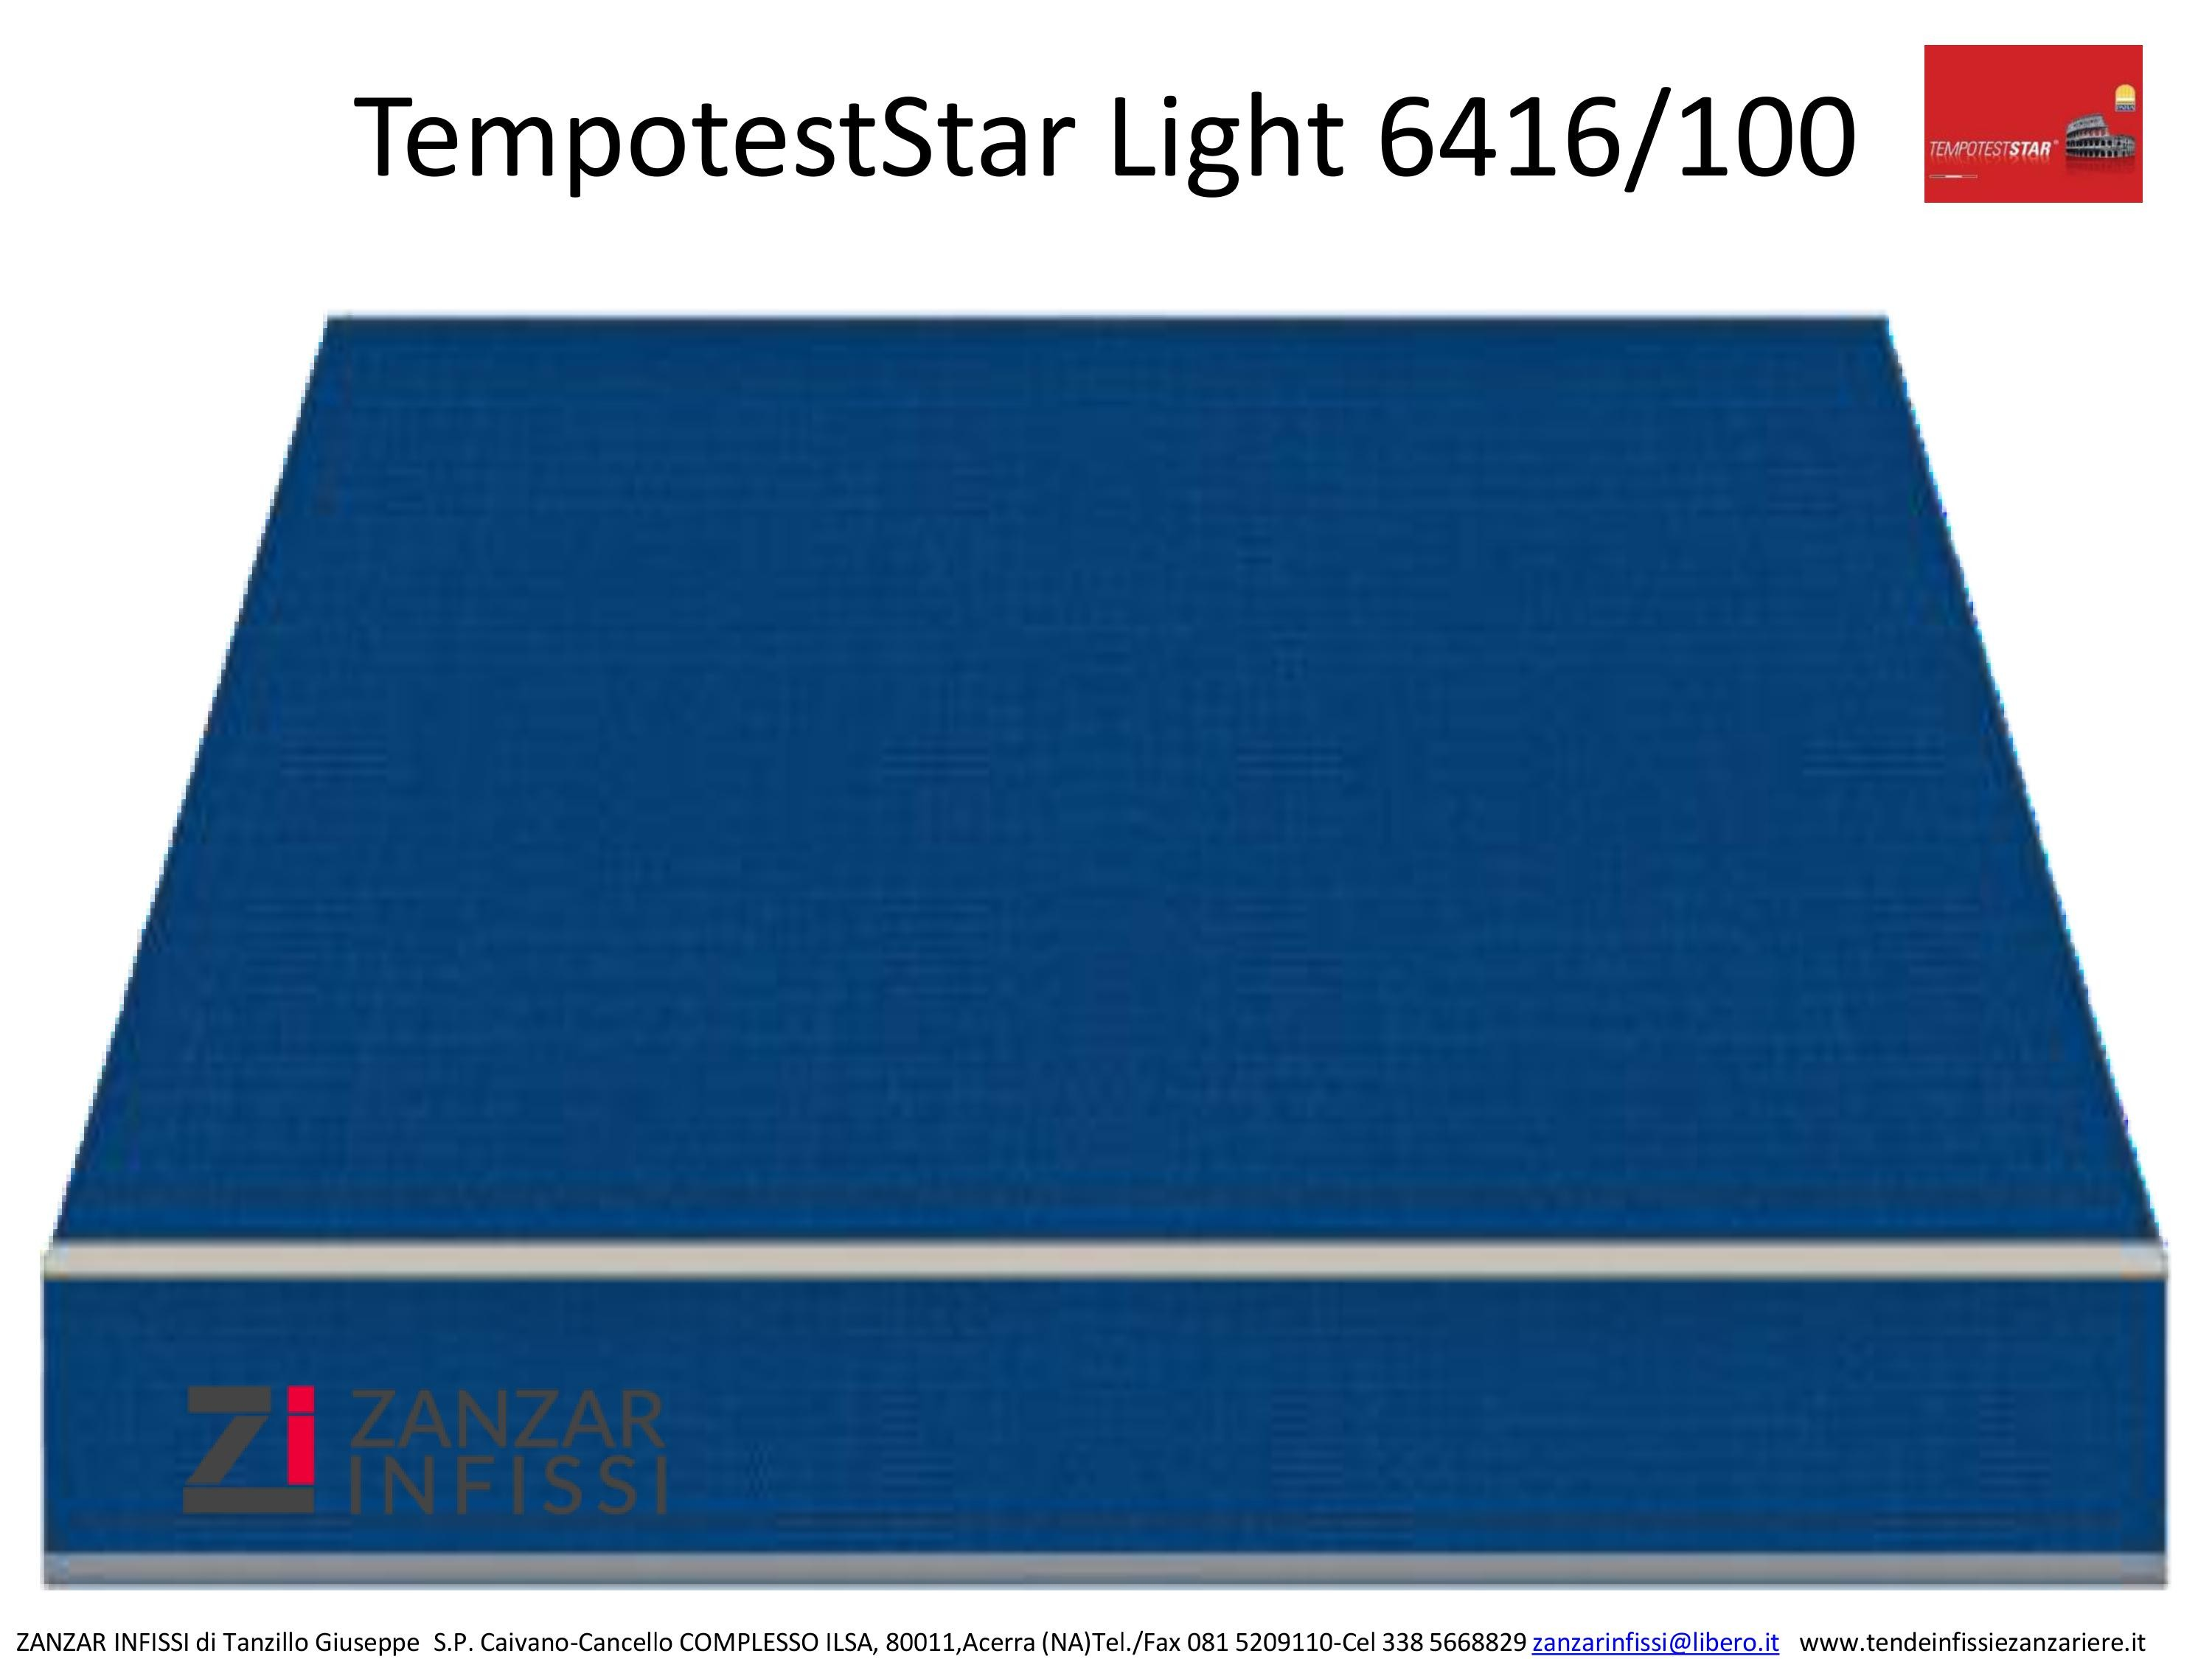 Tempotest star light 6416/100